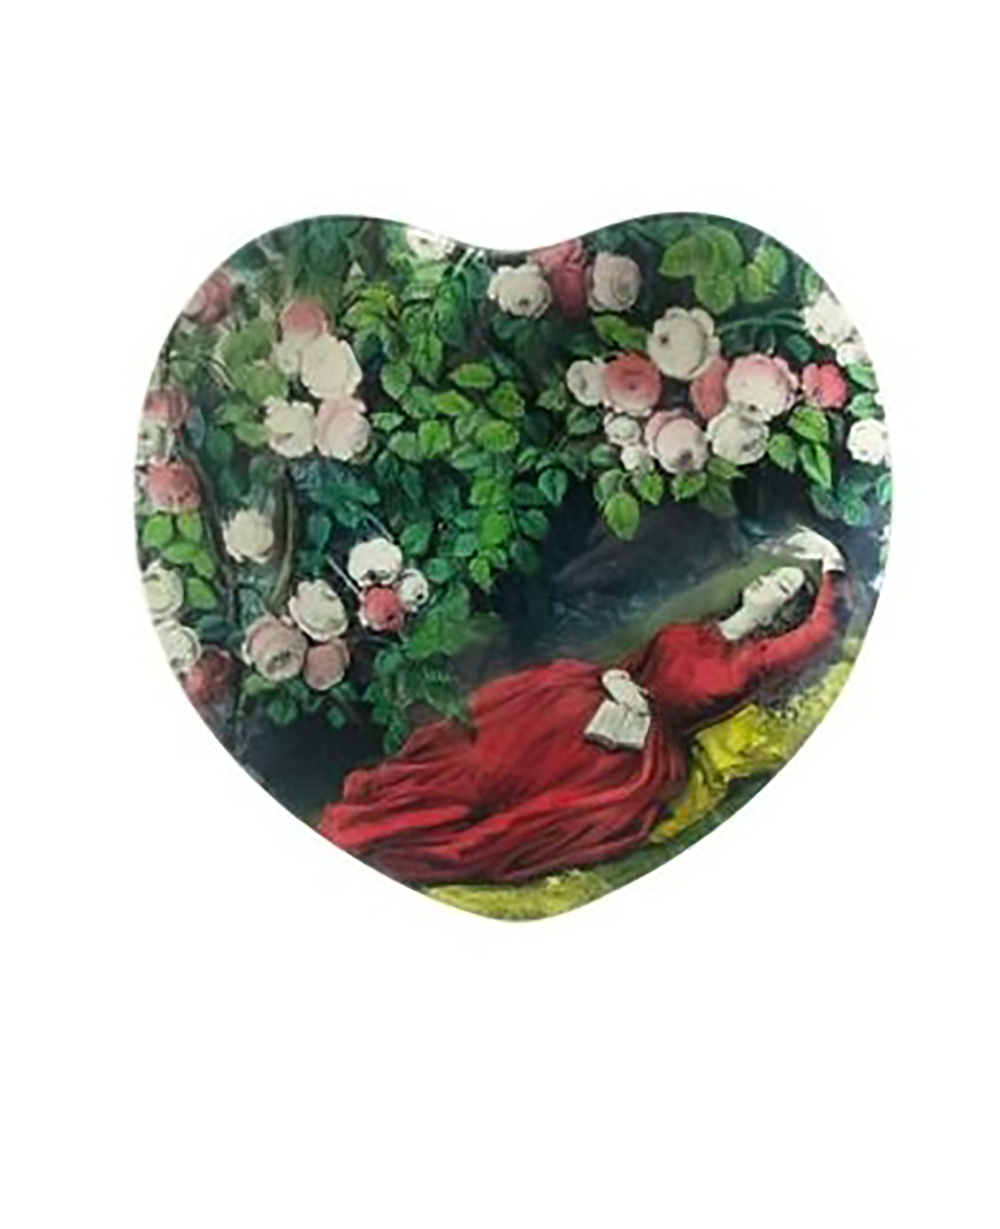 catbird john derian sleeping beauty heart dish love yourself 1500.jpg